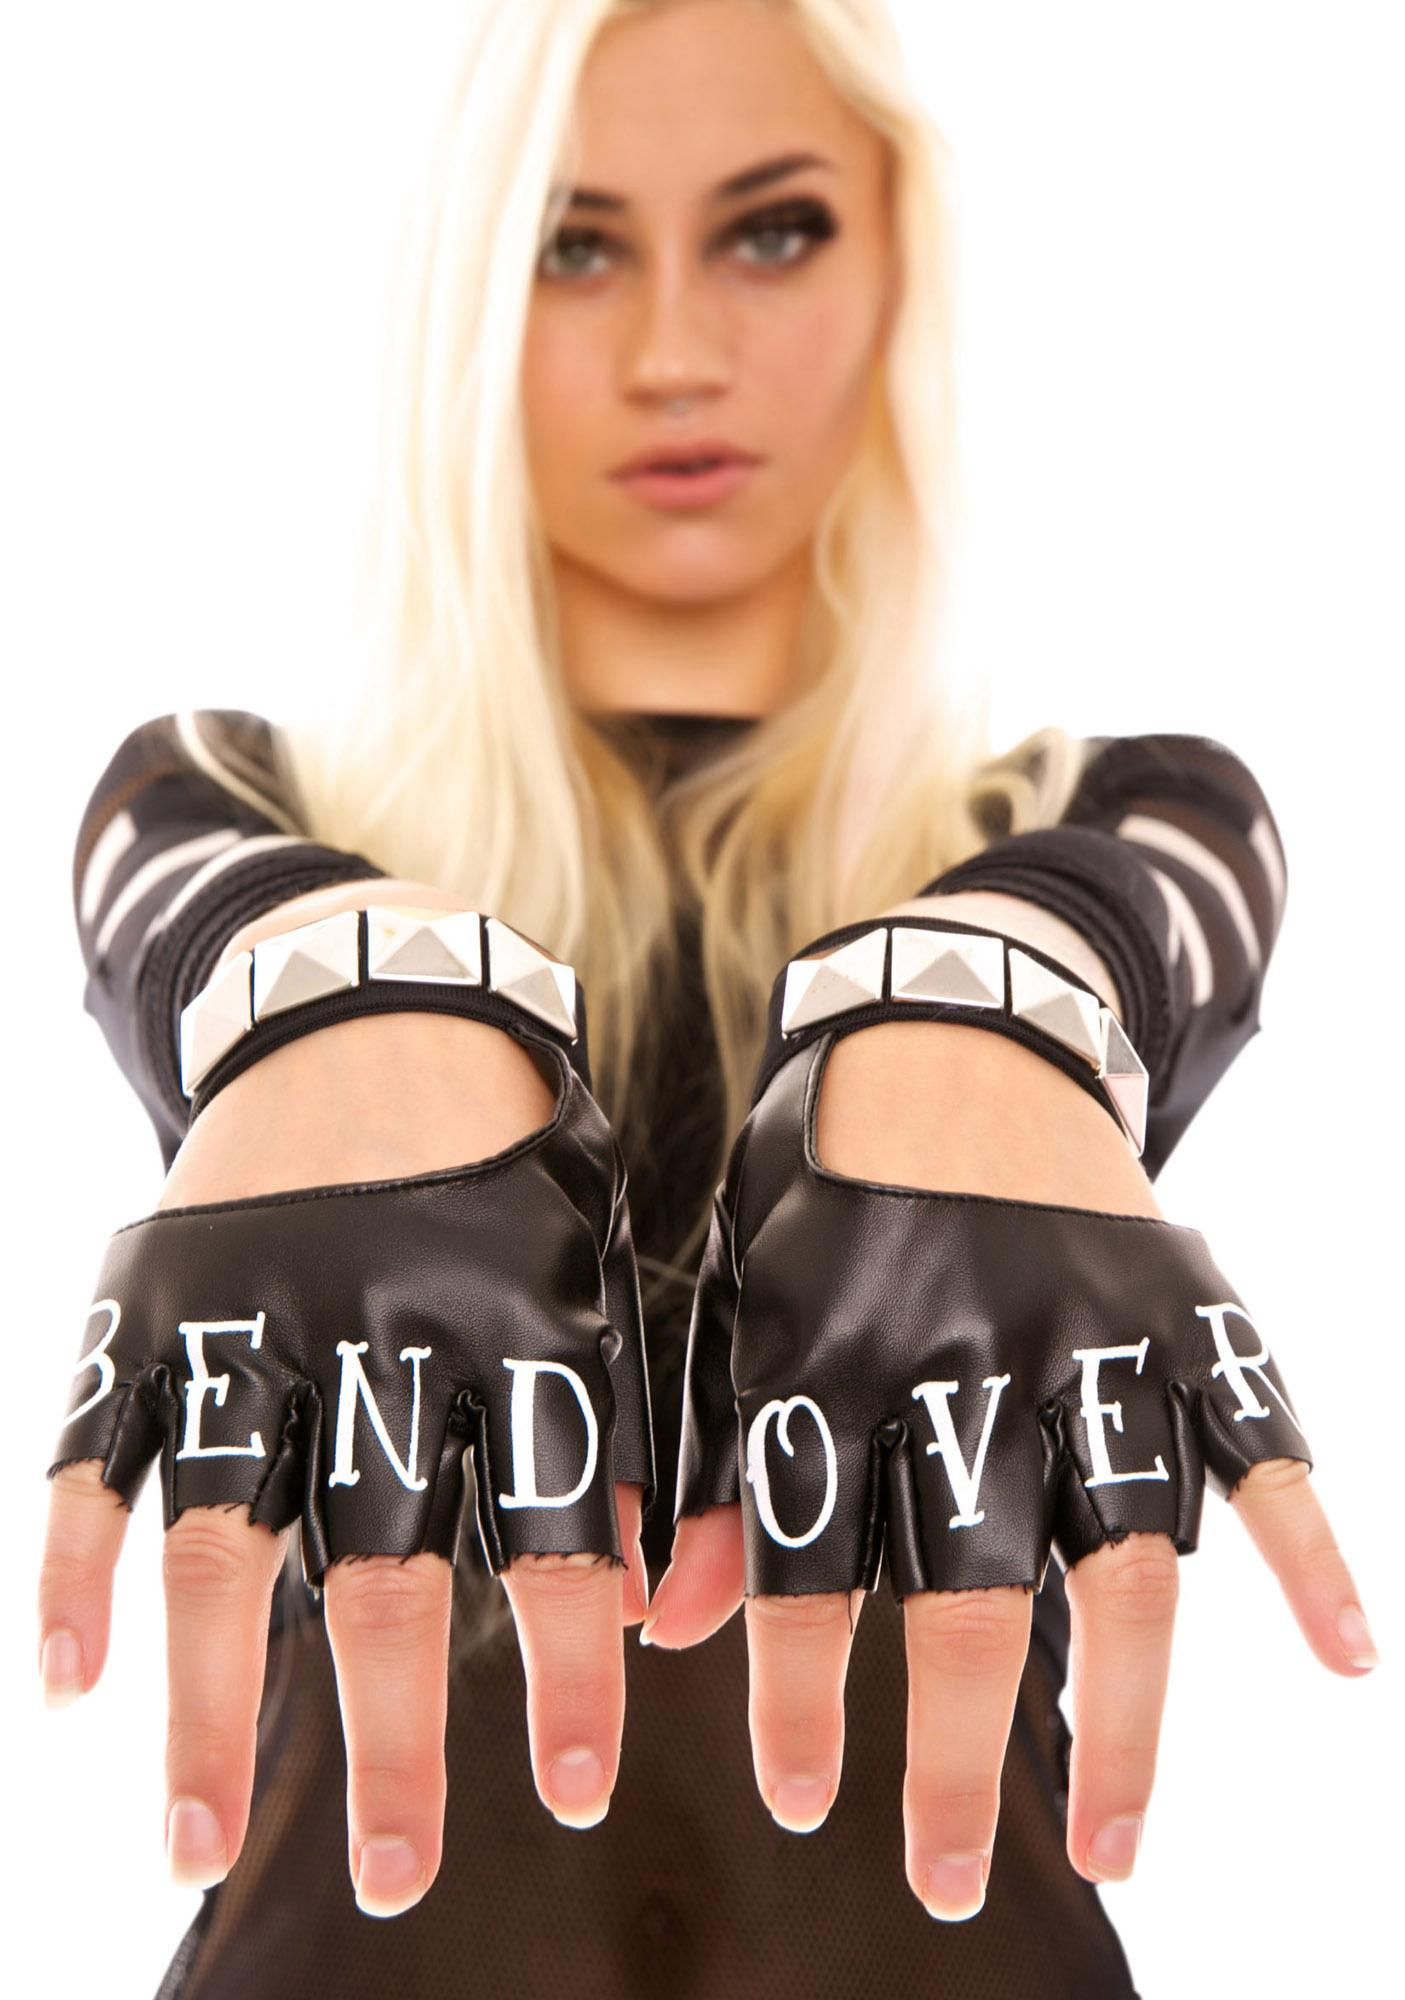 Bend Over Gloves